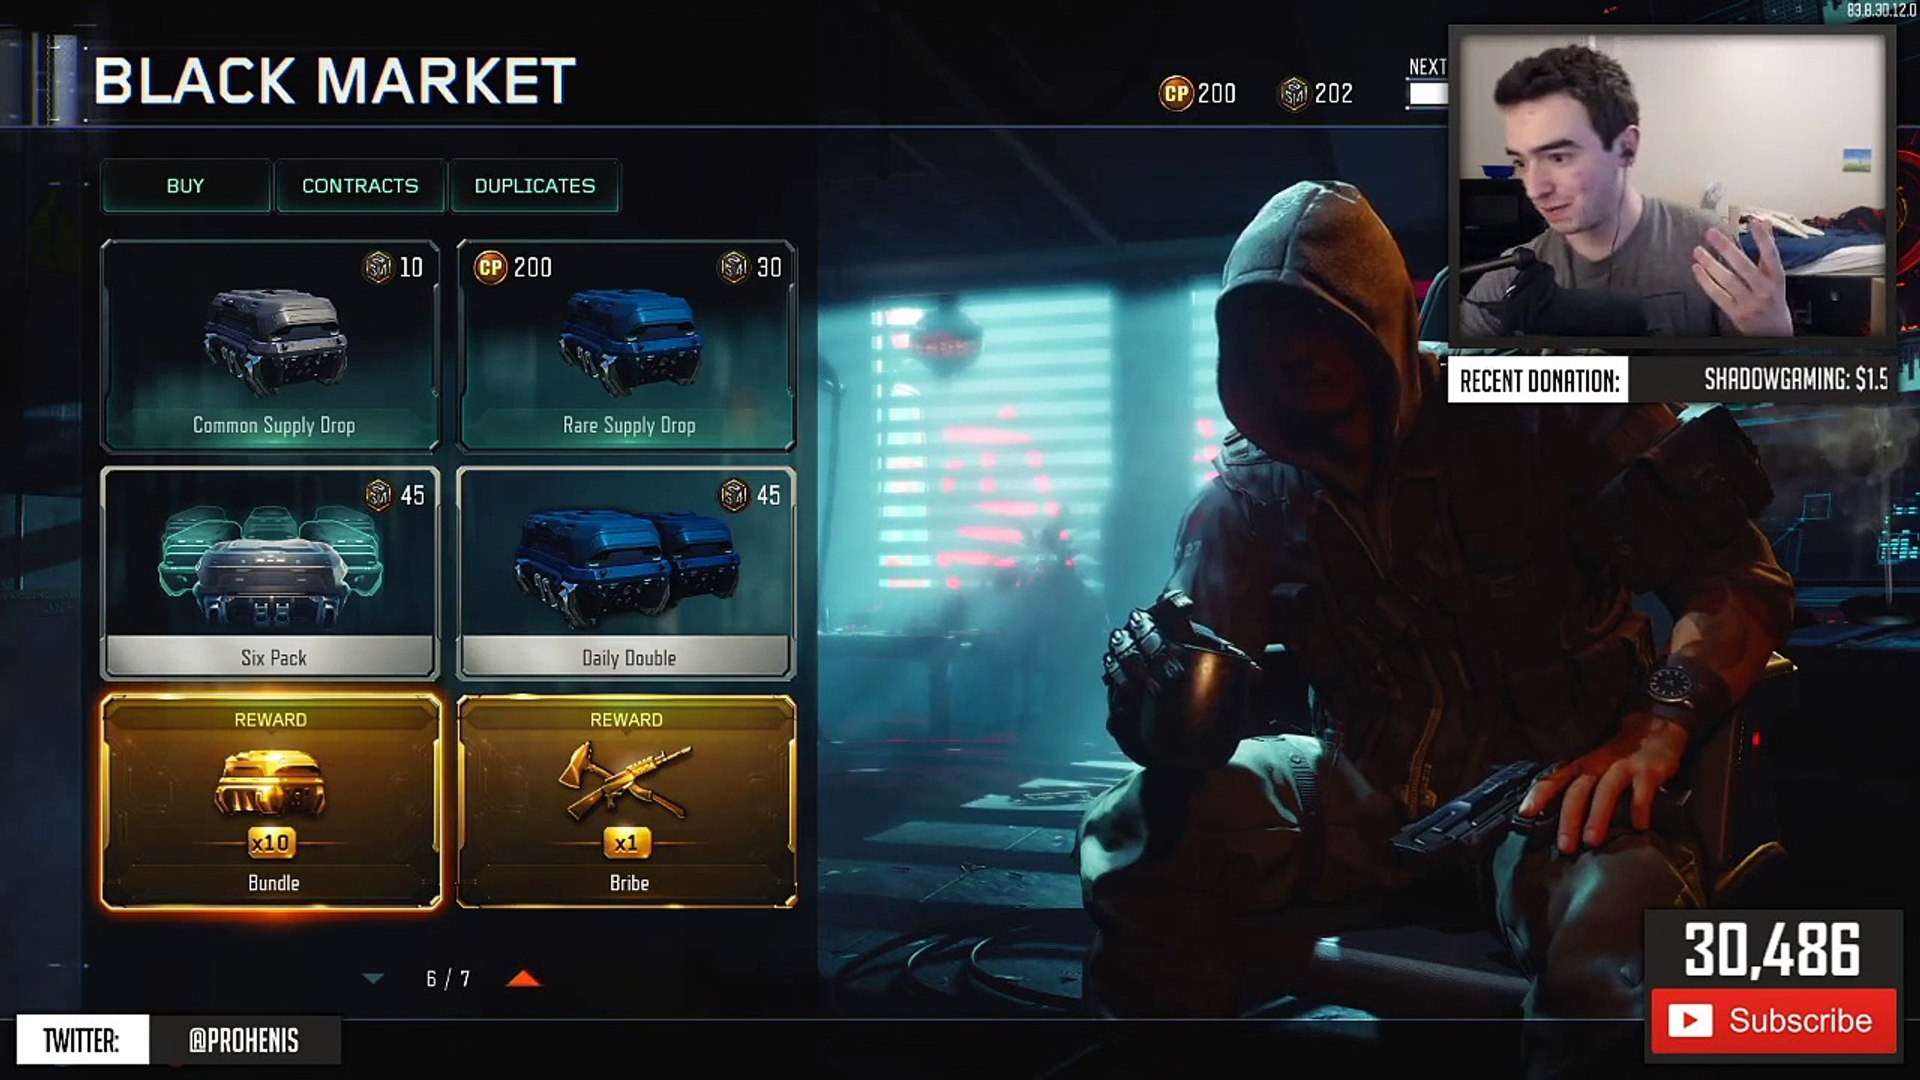 3 NEW DLC WEAPONS in 1 WEAPON BRIBE SUPPLY DROP OPENING! (BO3 New Weapon Opening)